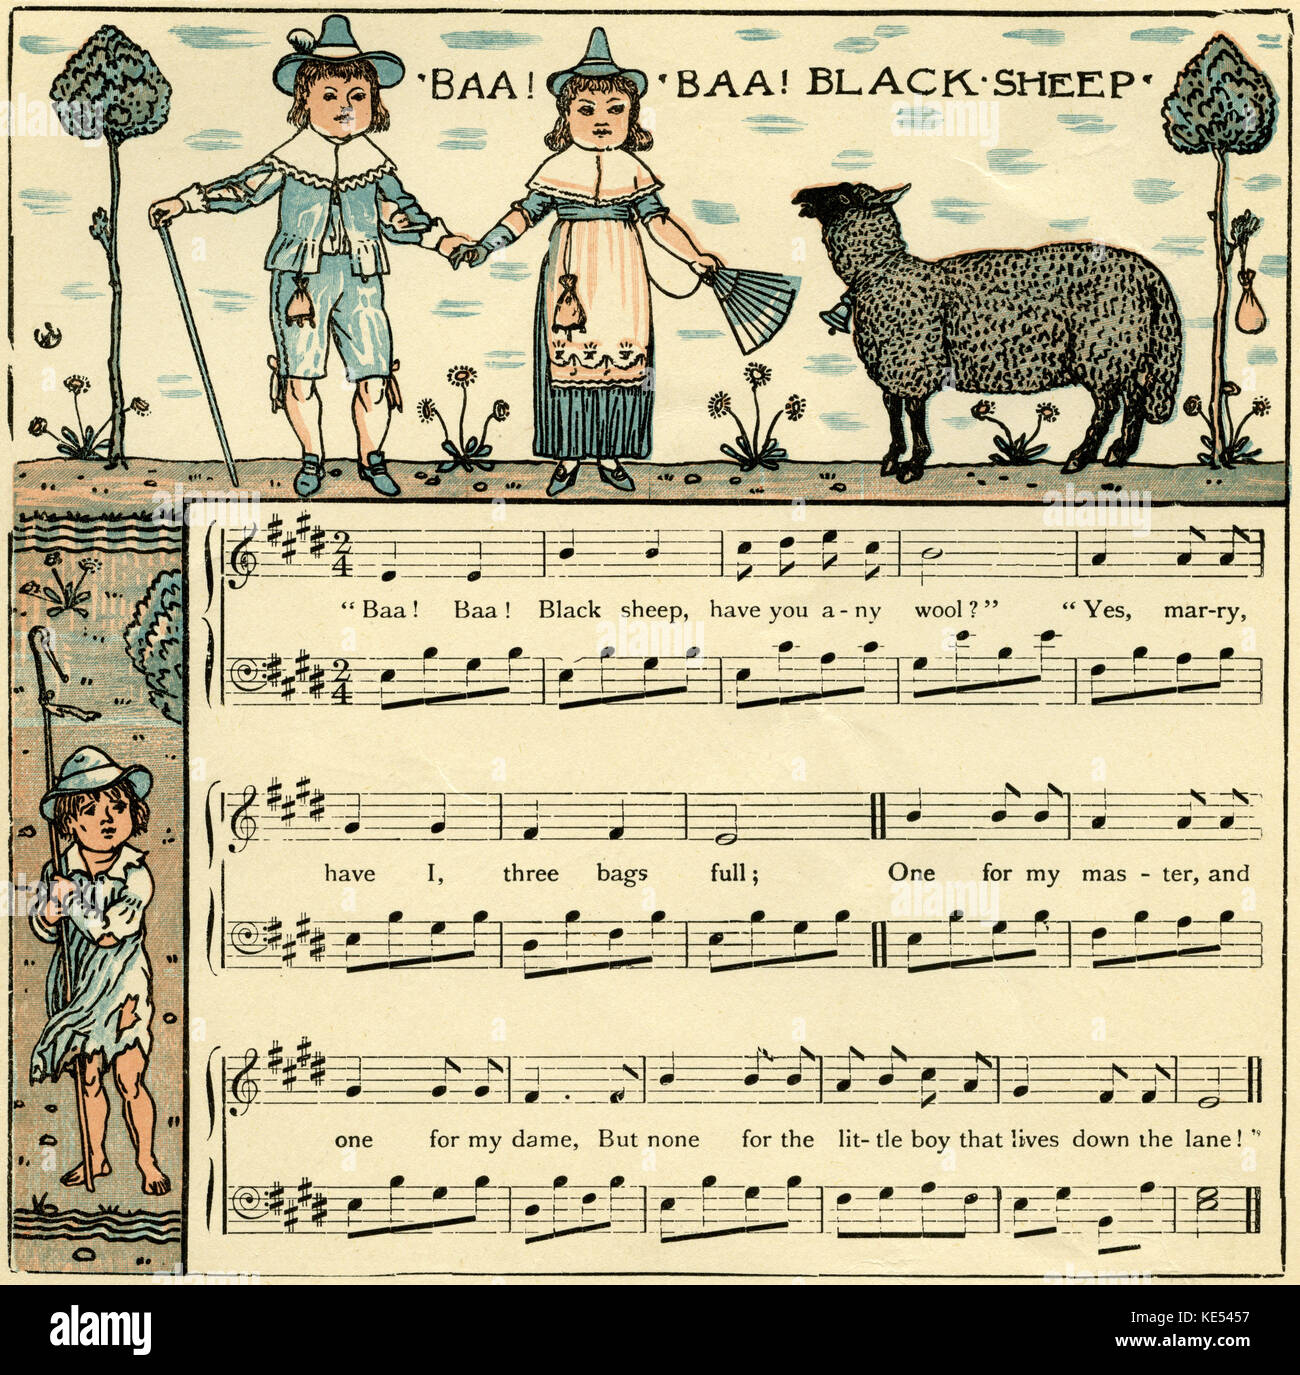 Baa, baa, black sheep, nursery rhyme score, illustration (1877) by Walter Crane. English artist of Arts and Crafts - Stock Image